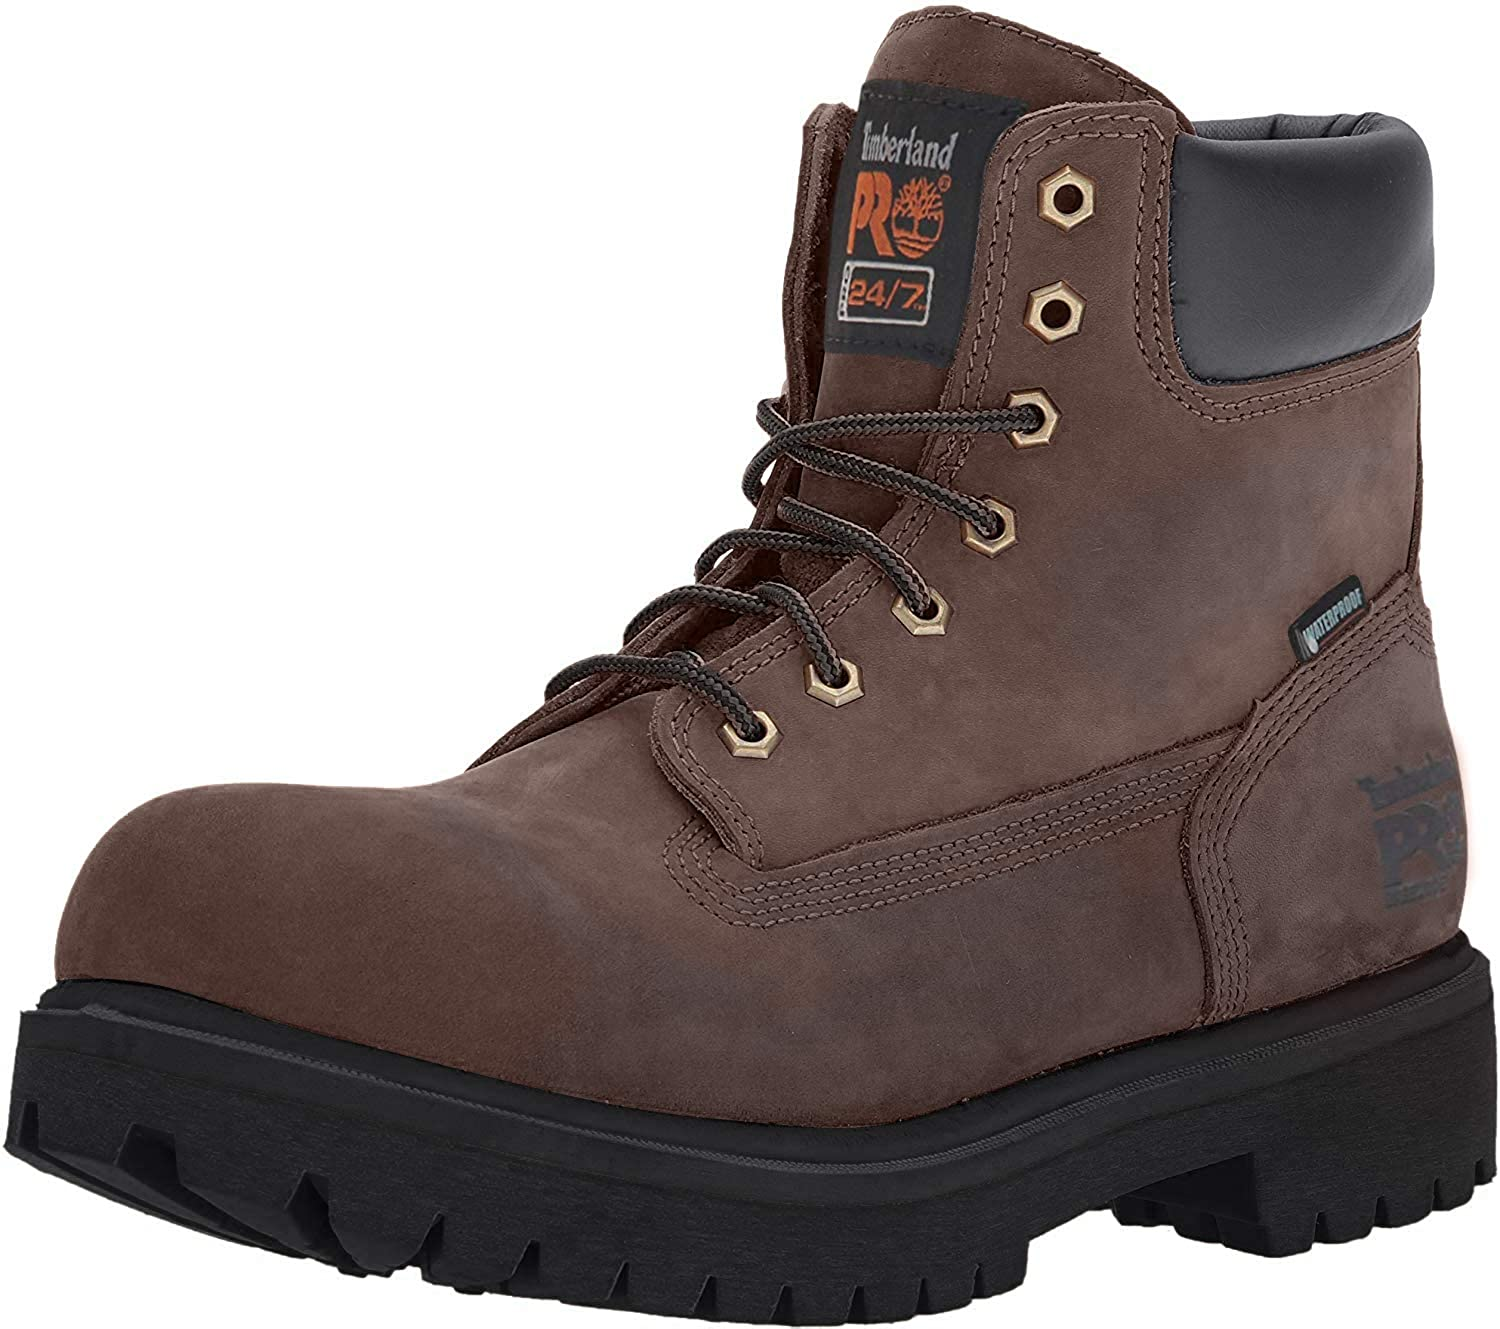 Timberland PRO Men's 38021 Direct Attach 6